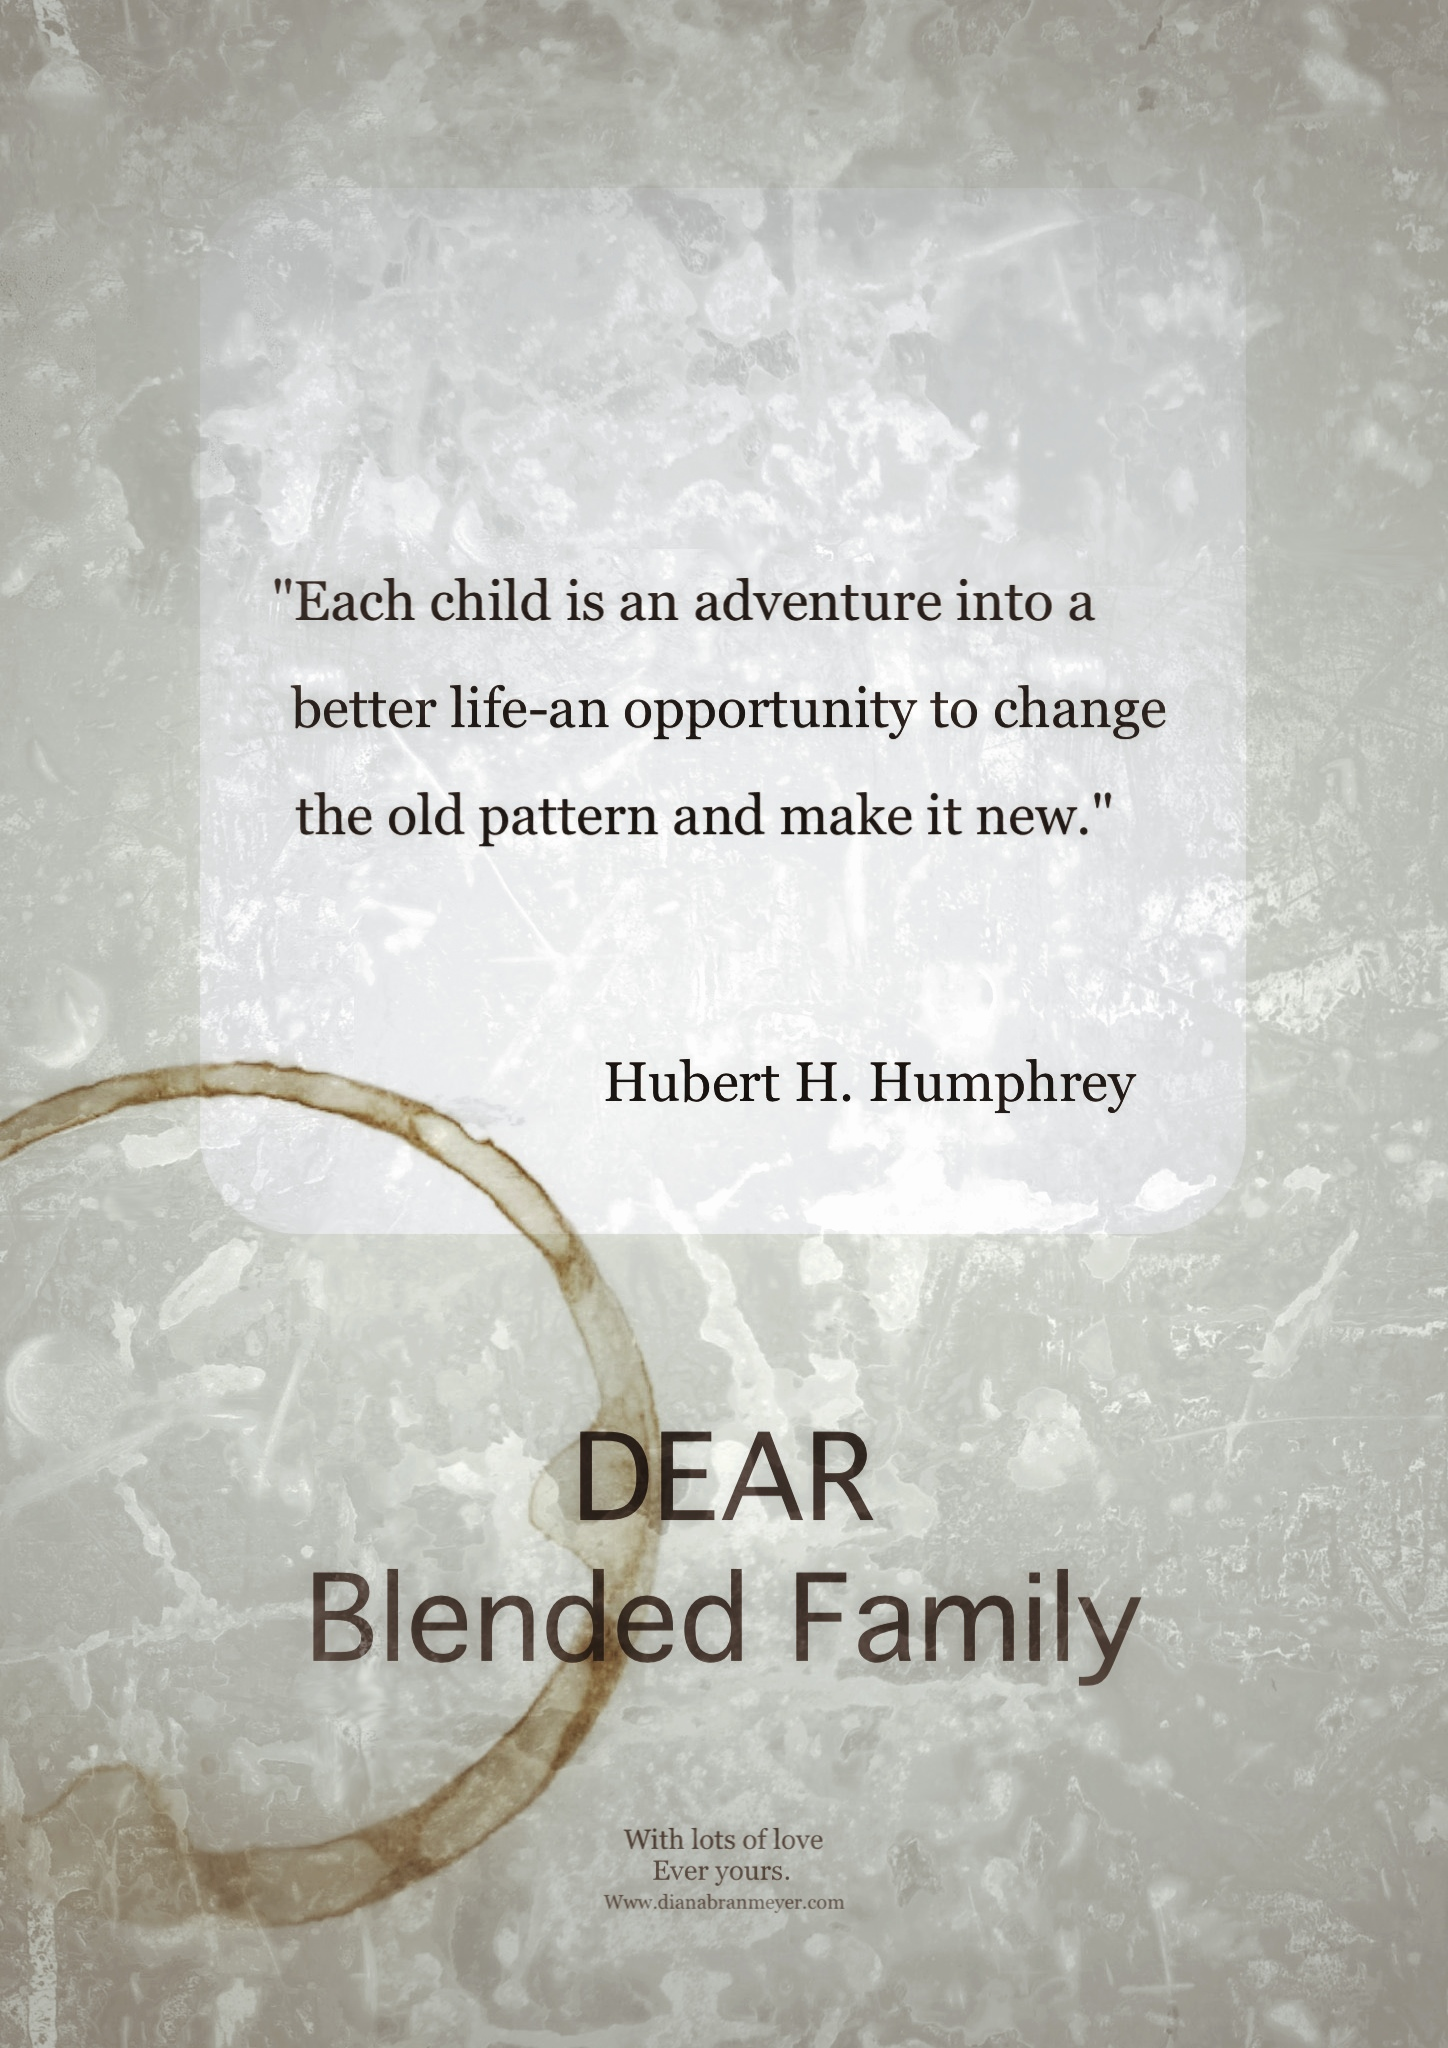 inspirational quotes for blended families quotesgram